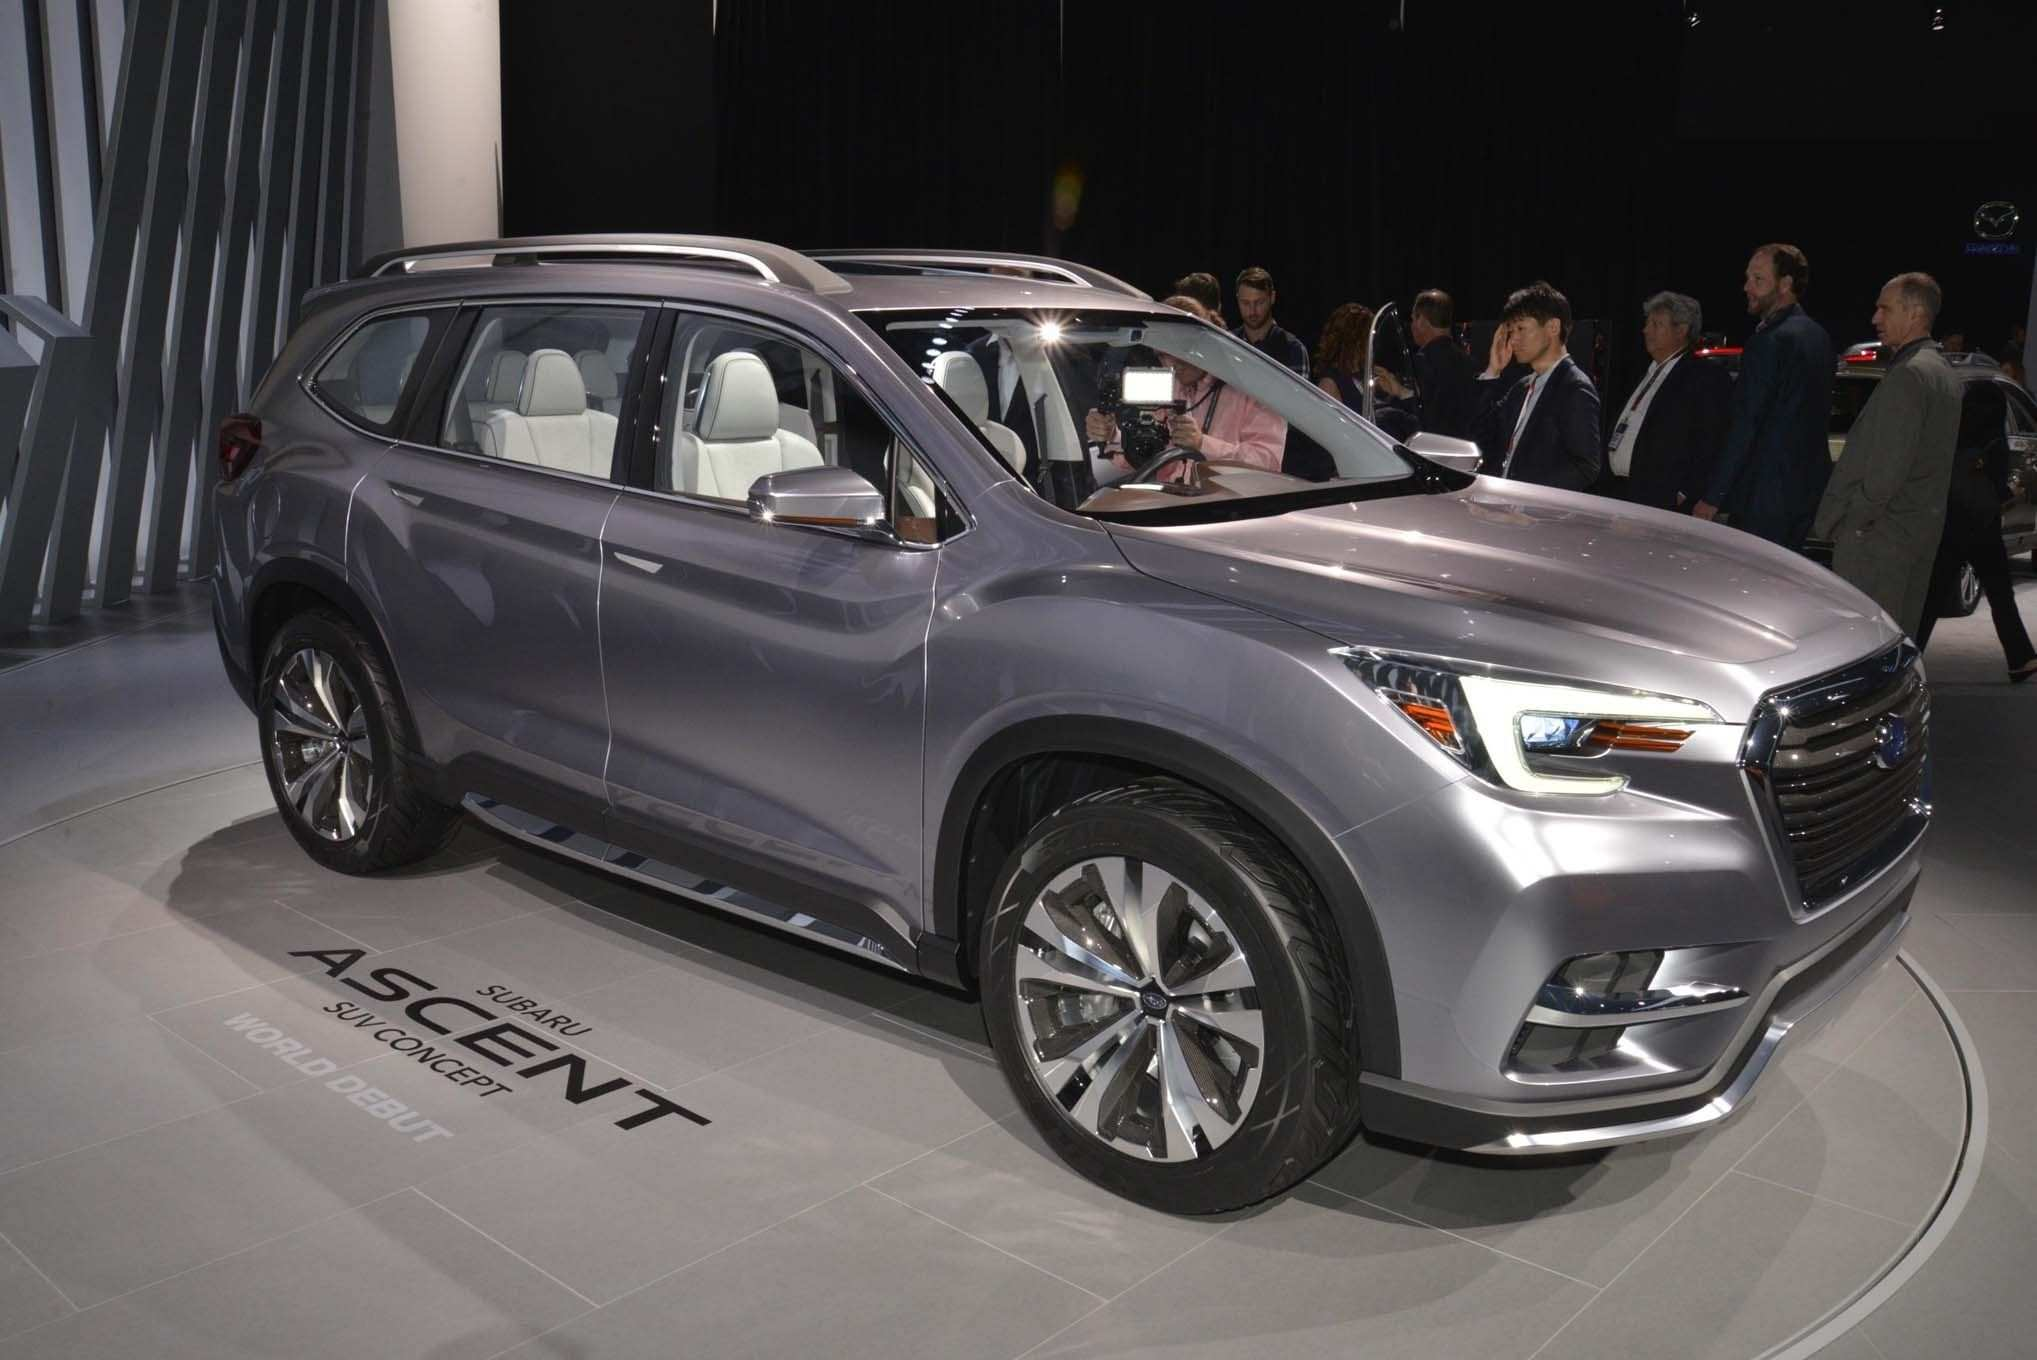 41 Best Review 2019 Subaru Suv Pictures for 2019 Subaru Suv